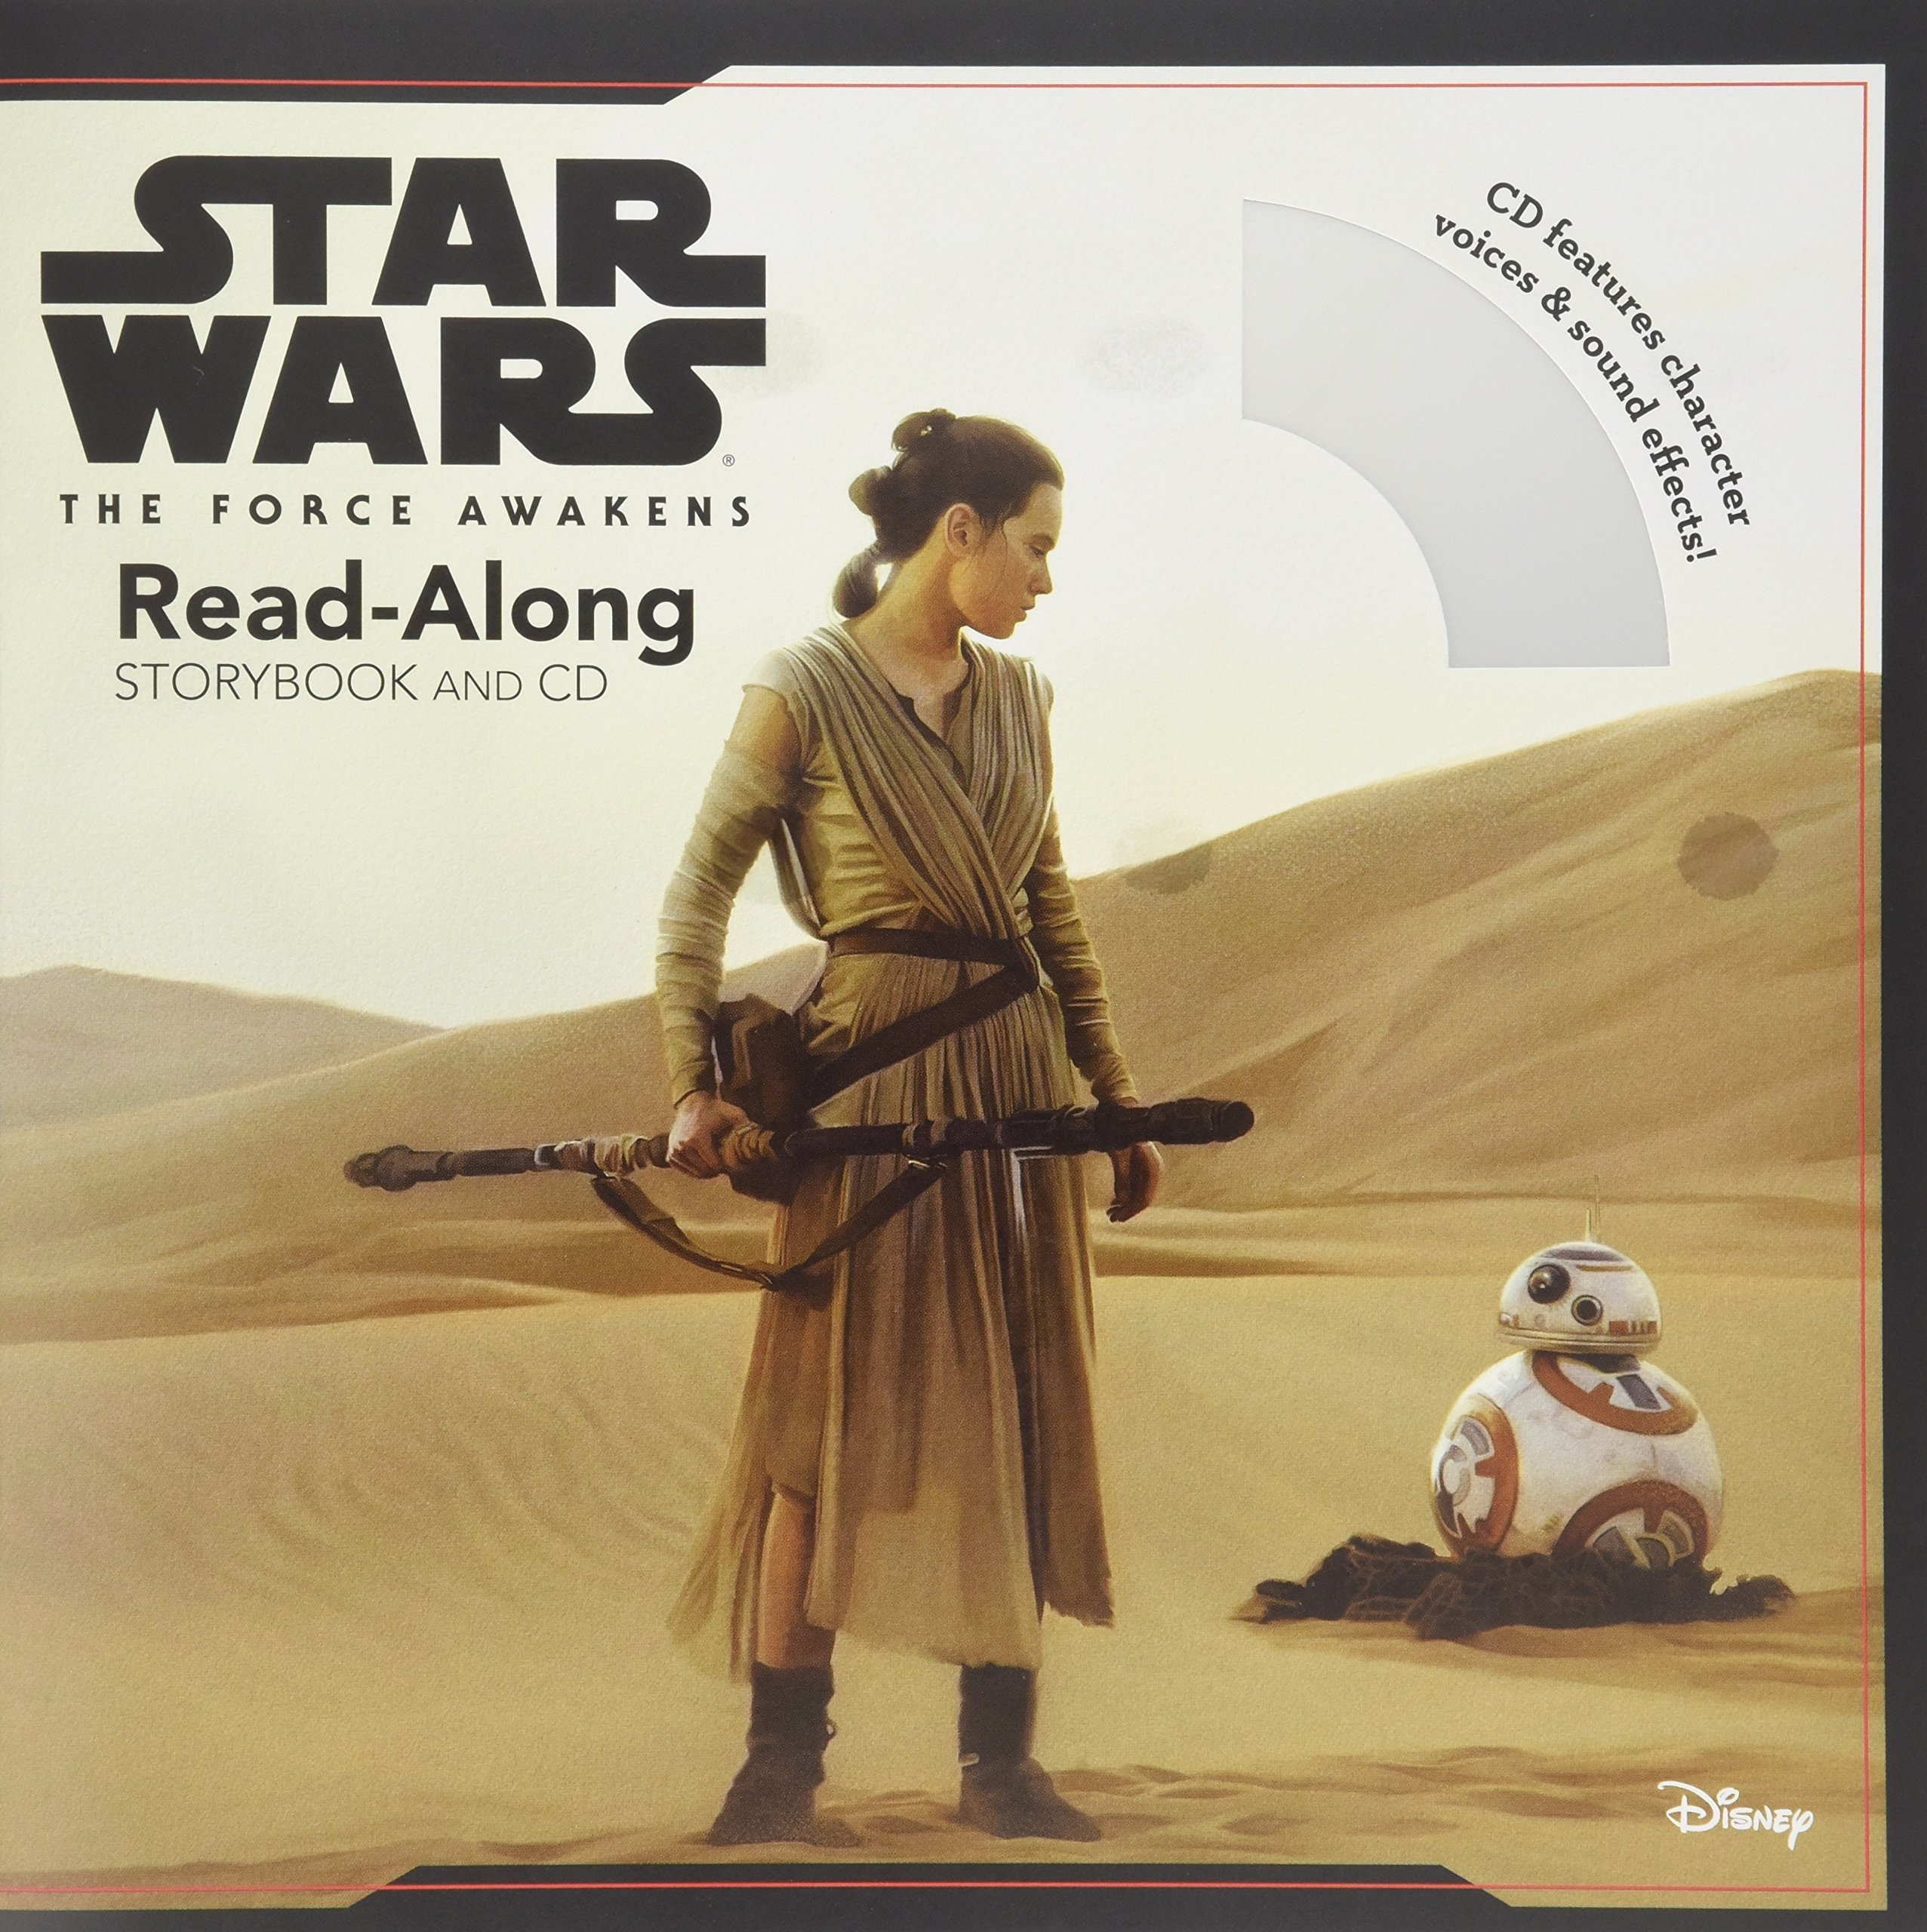 Star Wars: The Force Awakens Read-Along Book and CD